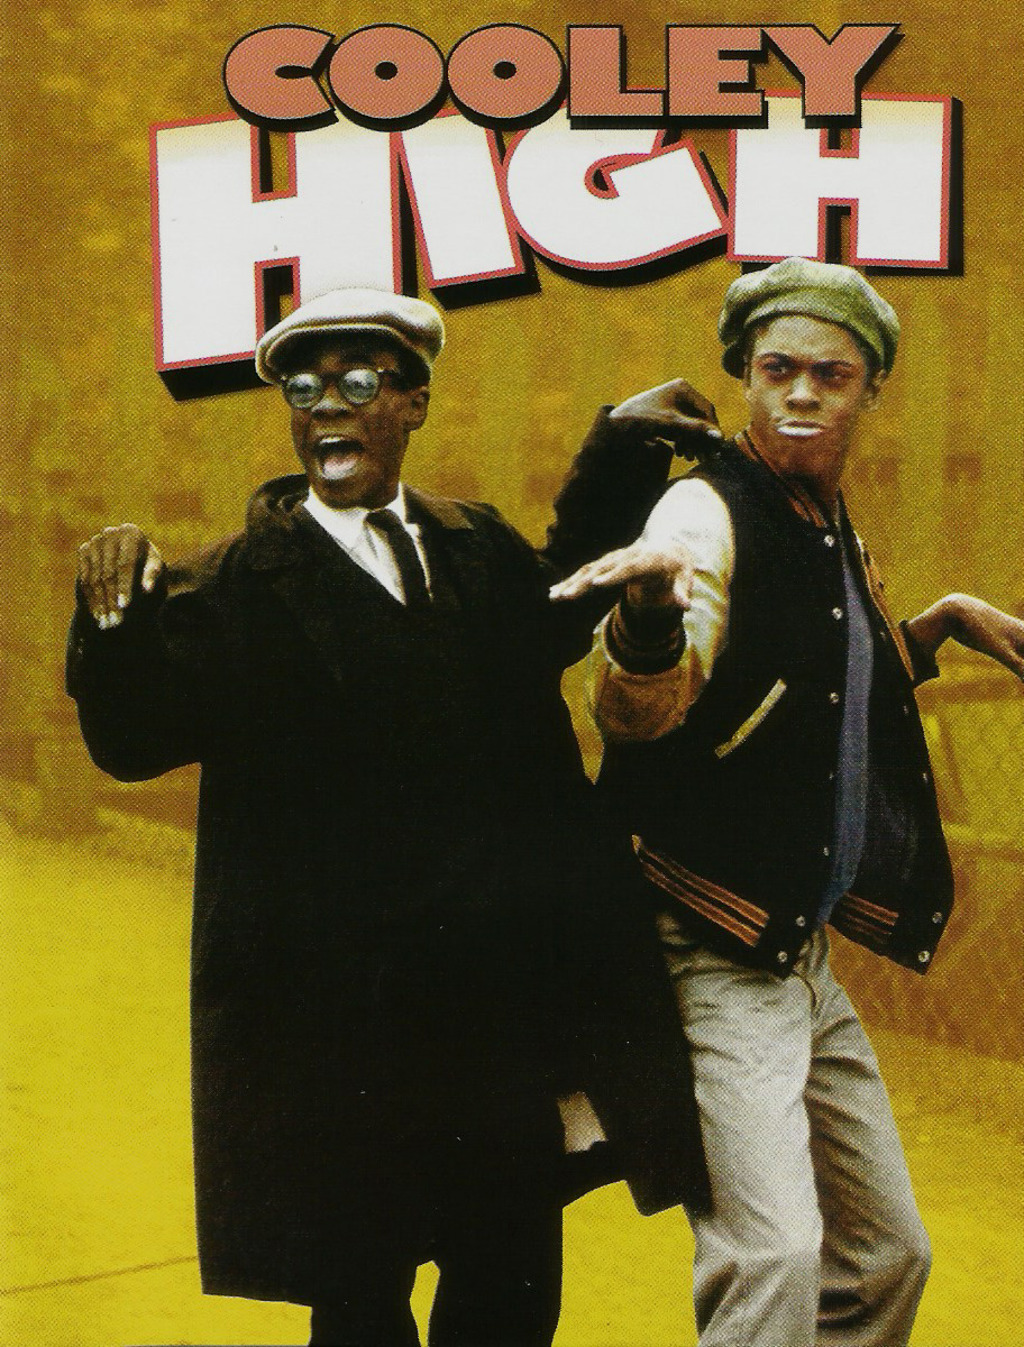 cooley high movie download